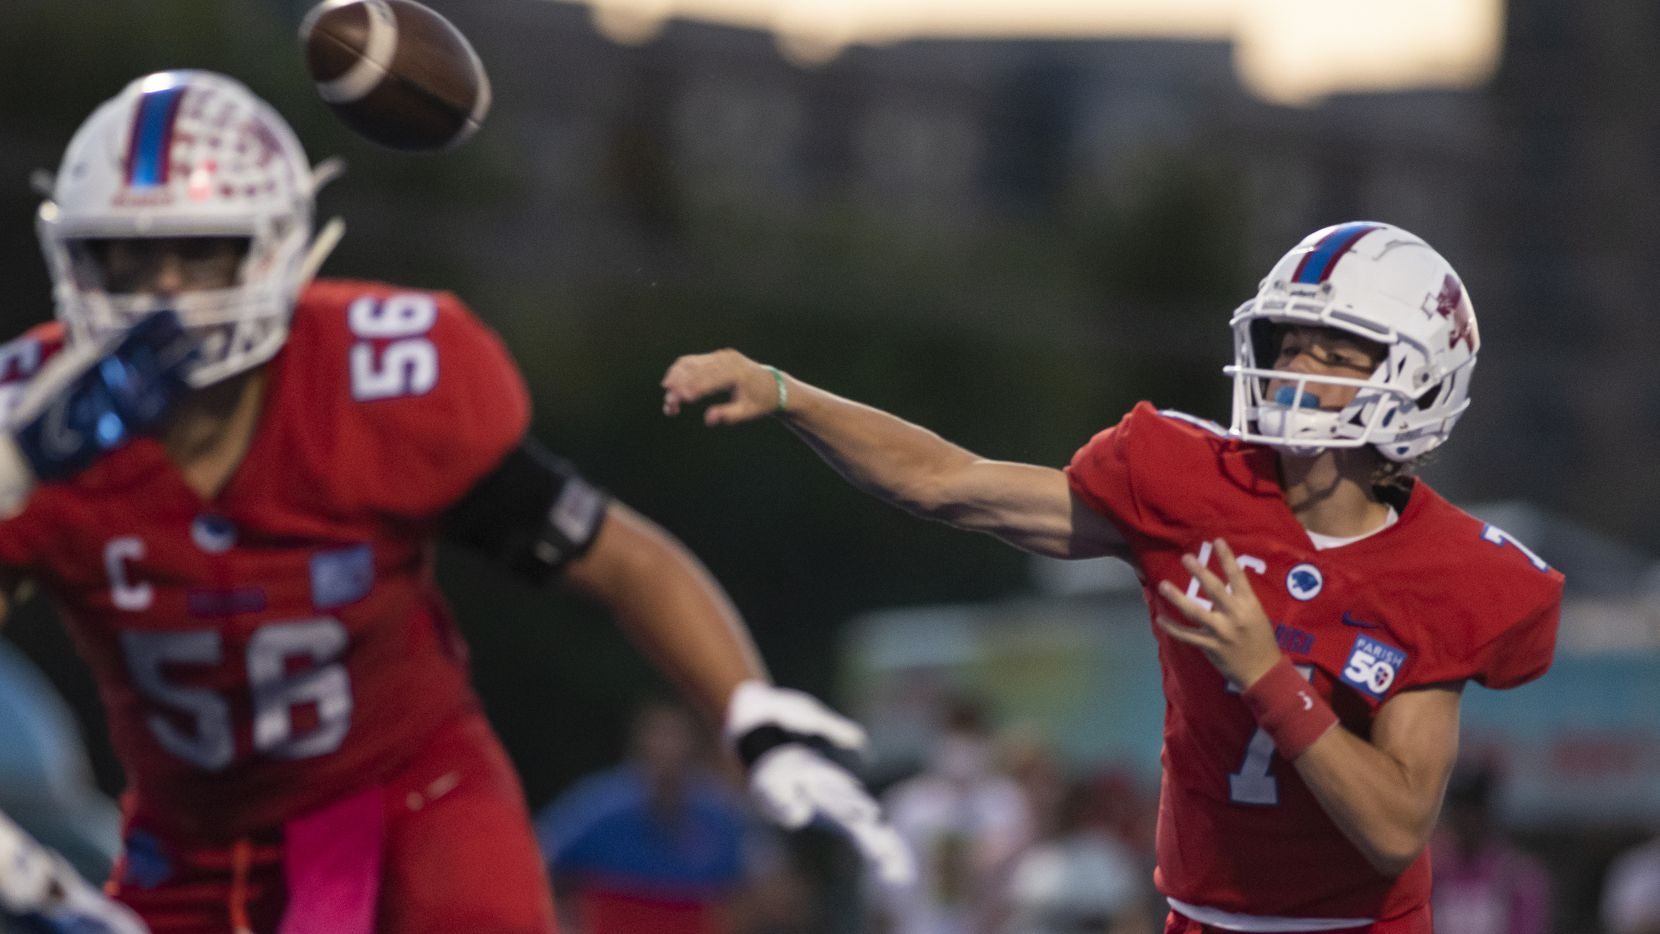 Parish Episcopal freshman Sawyer Anderson (7) throws a pass down the field during Parish EpiscopalÕs home game against Argyle Liberty Christian at Gloria Snyder Stadium on Friday, September 17, 2021 in Dallas, Texas.